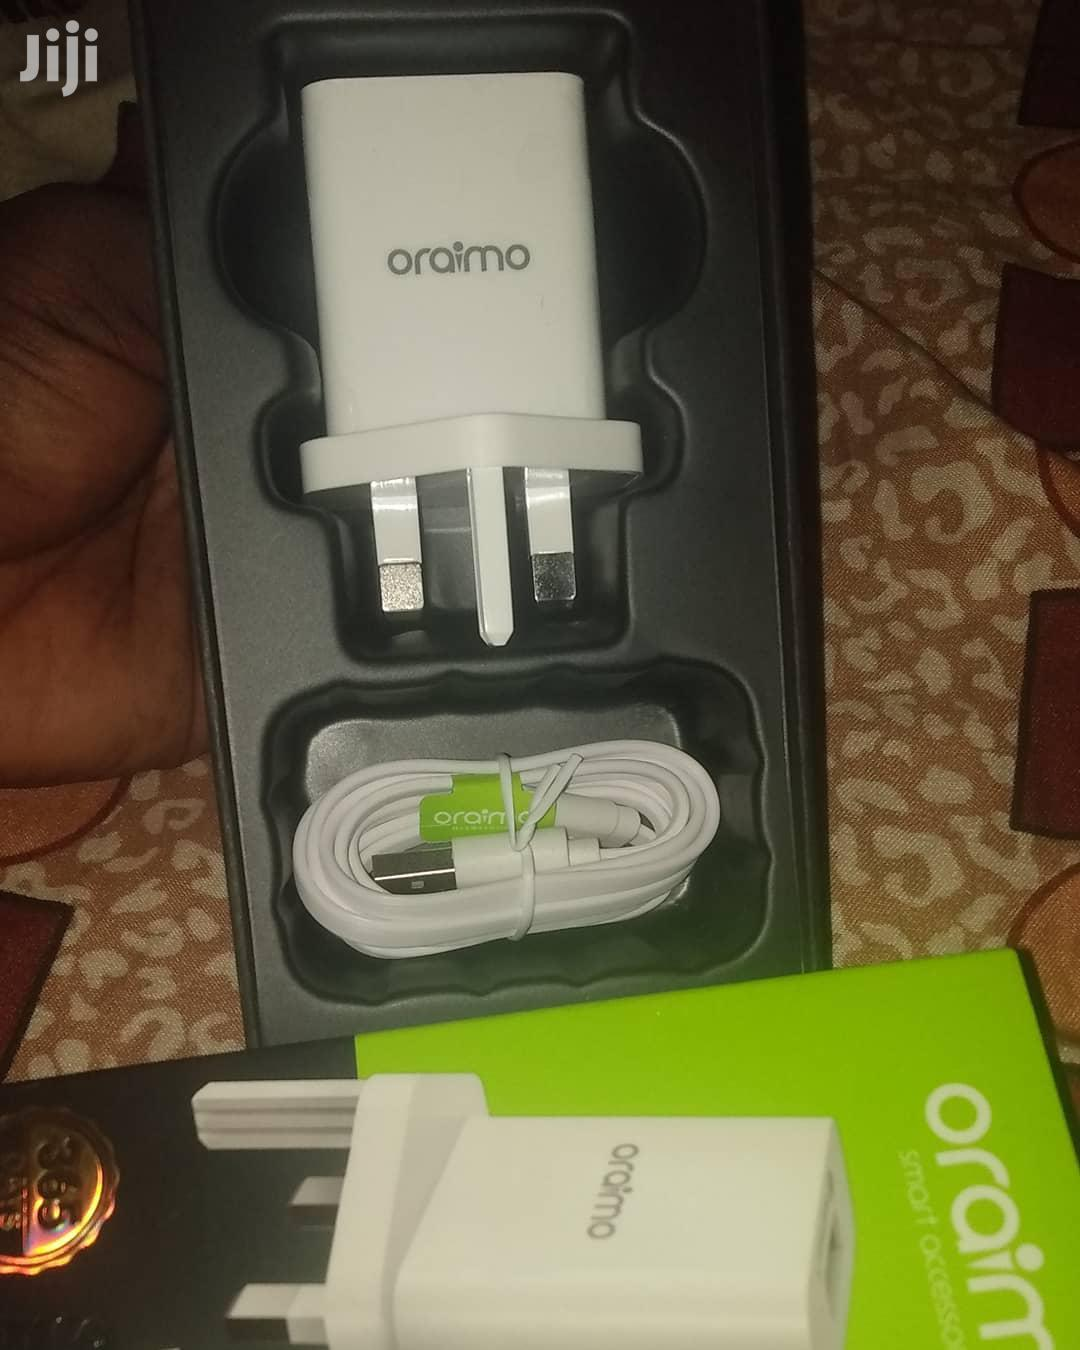 Oraimo OCW-U61D Dual USB Charger   Accessories for Mobile Phones & Tablets for sale in Tema Metropolitan, Greater Accra, Ghana